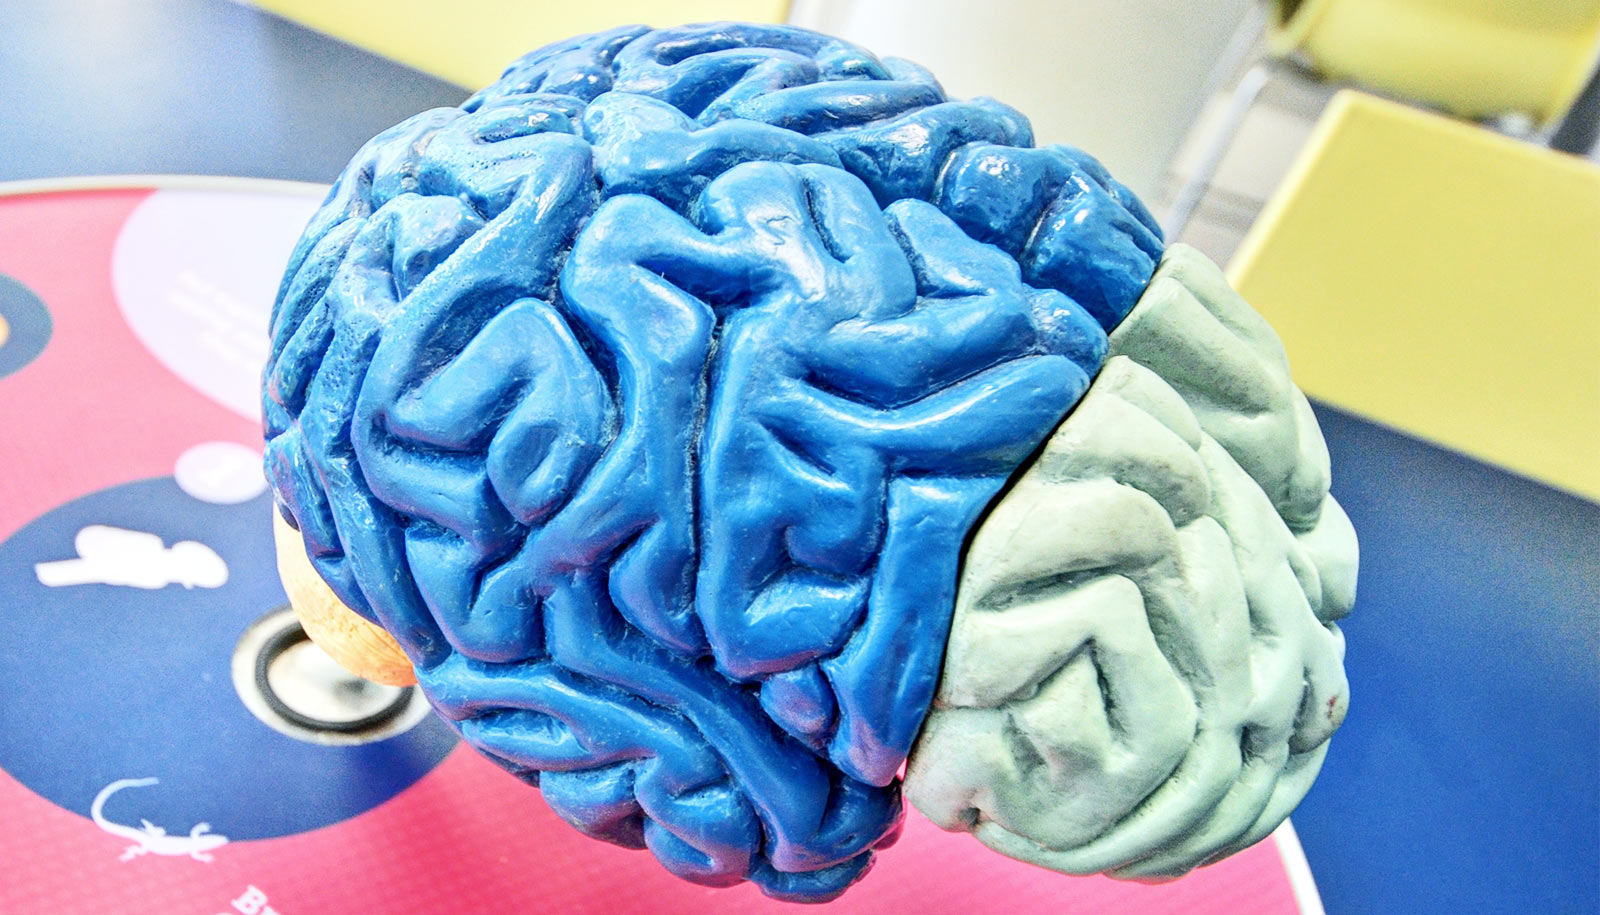 1 method may prevent brain cell death in several diseases